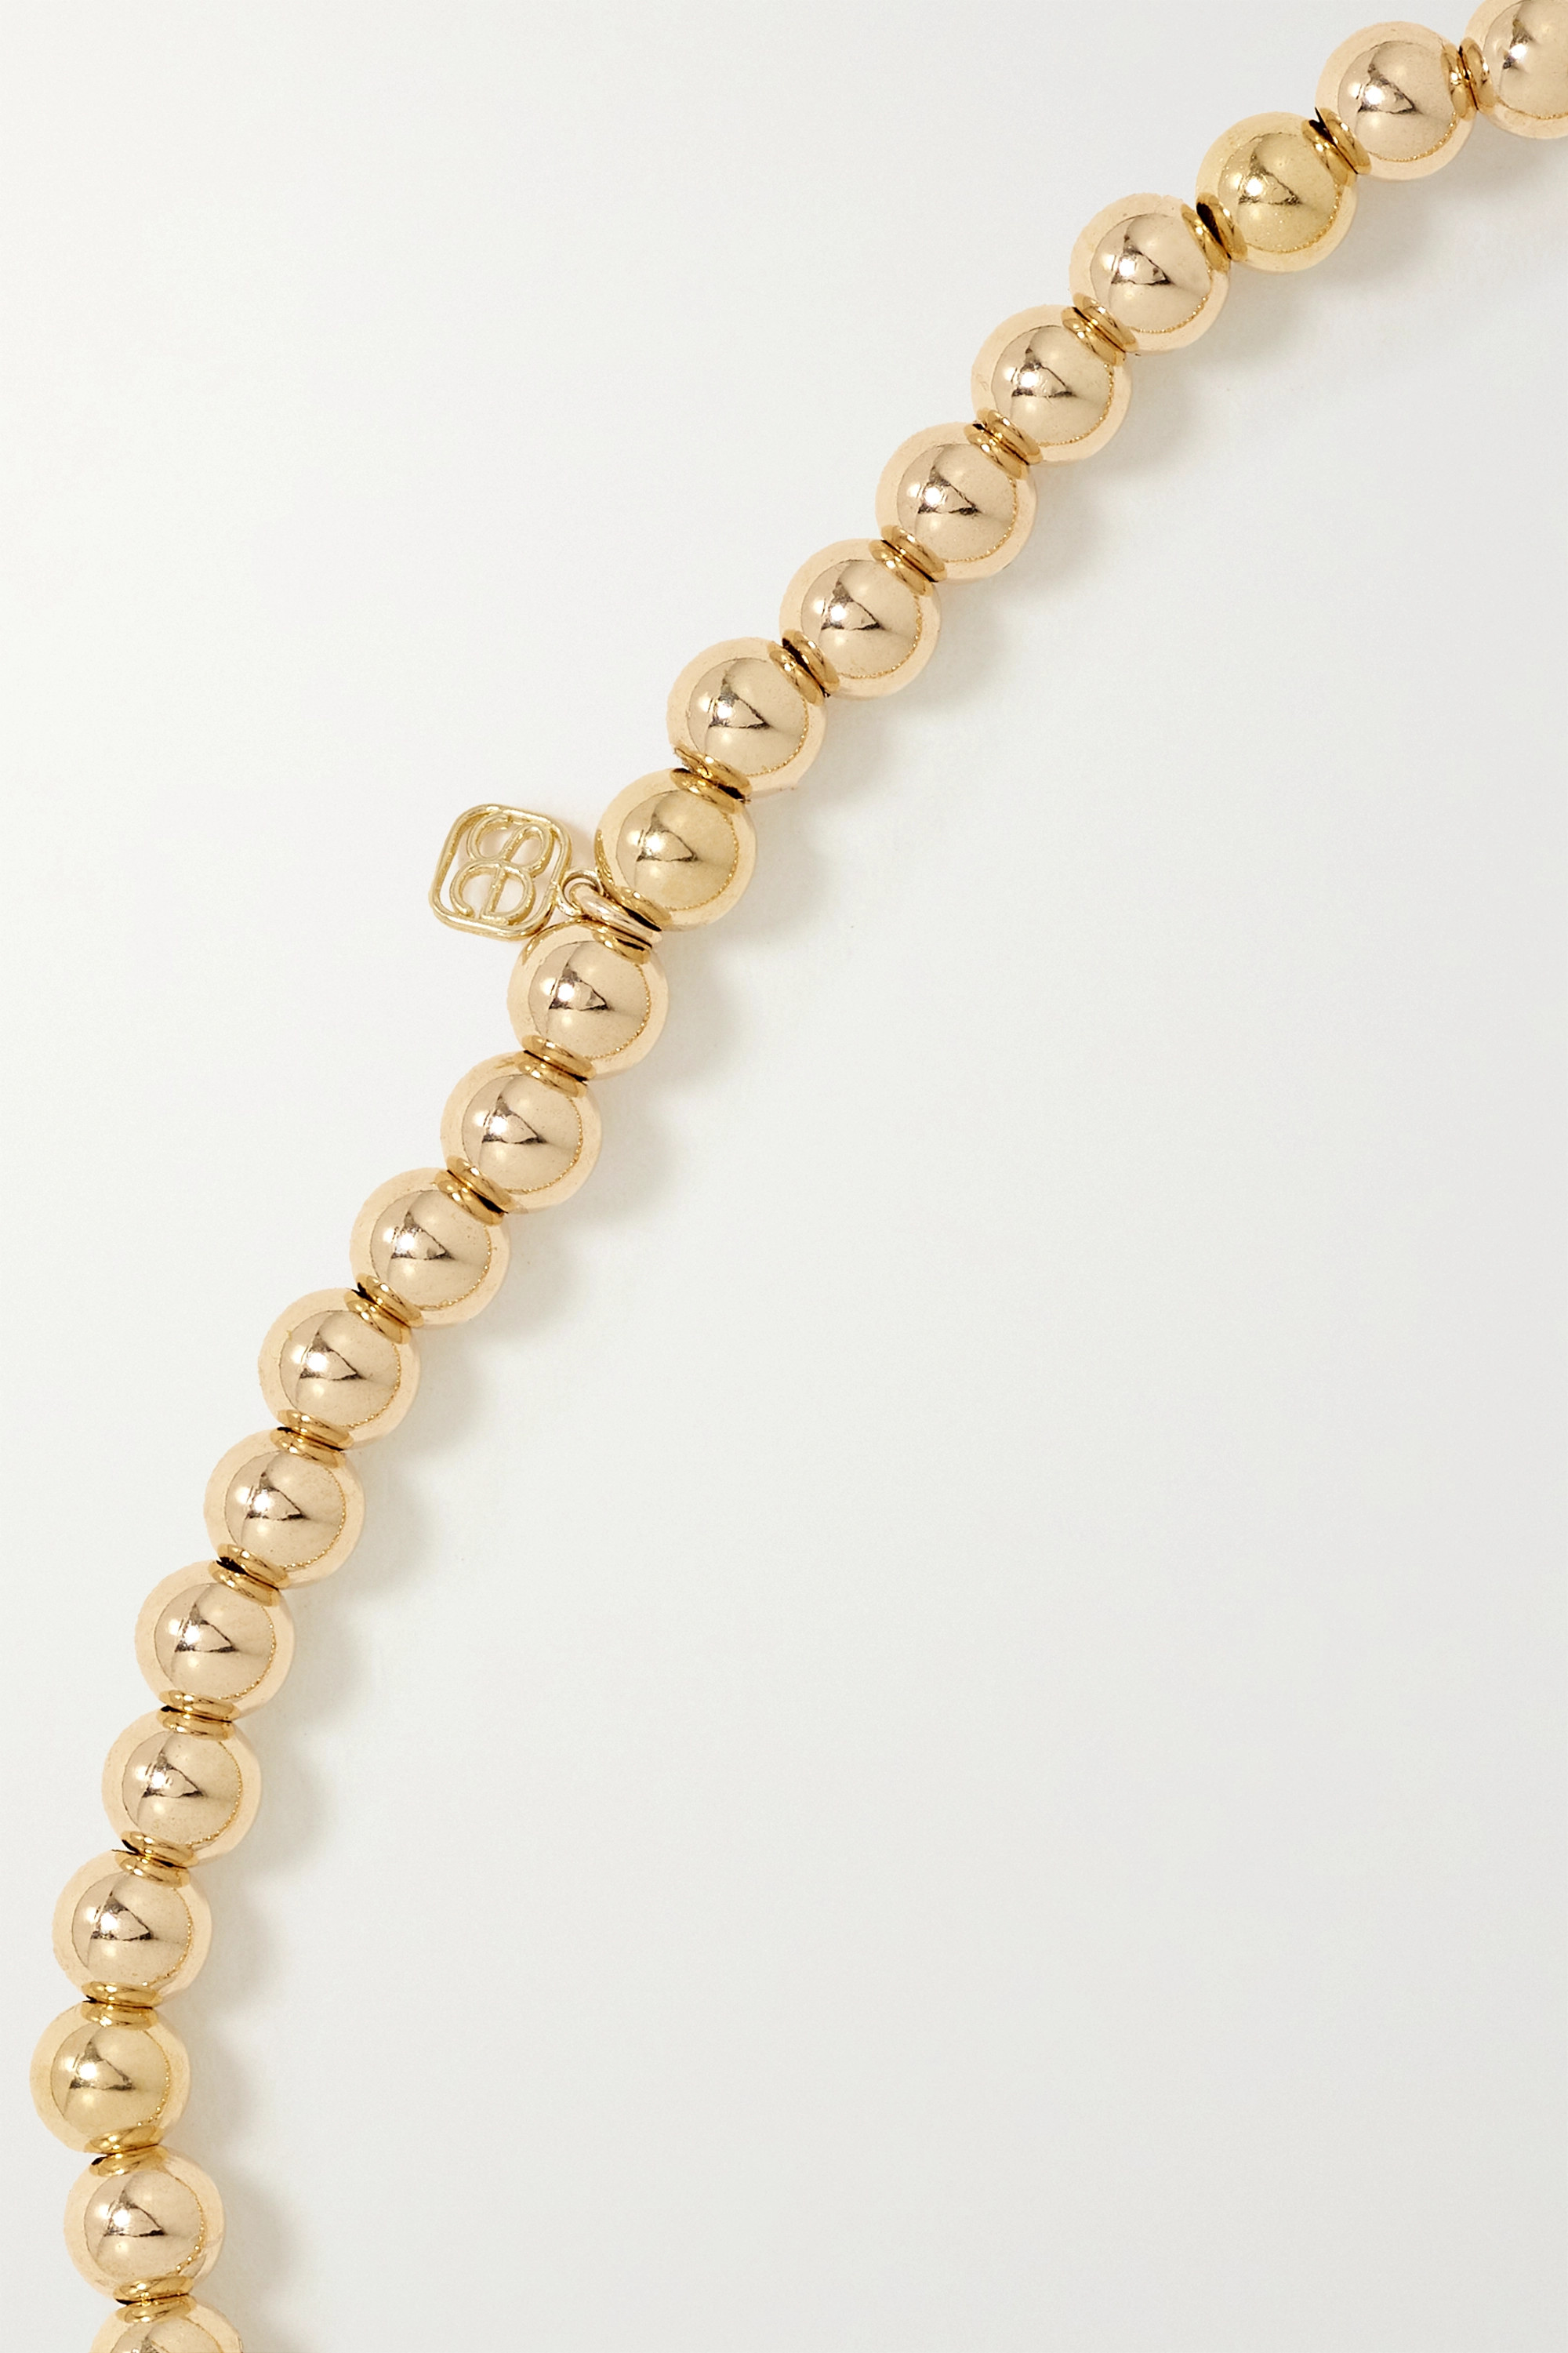 SYDNEY EVAN Lucky 7 14-karat gold diamond bracelet